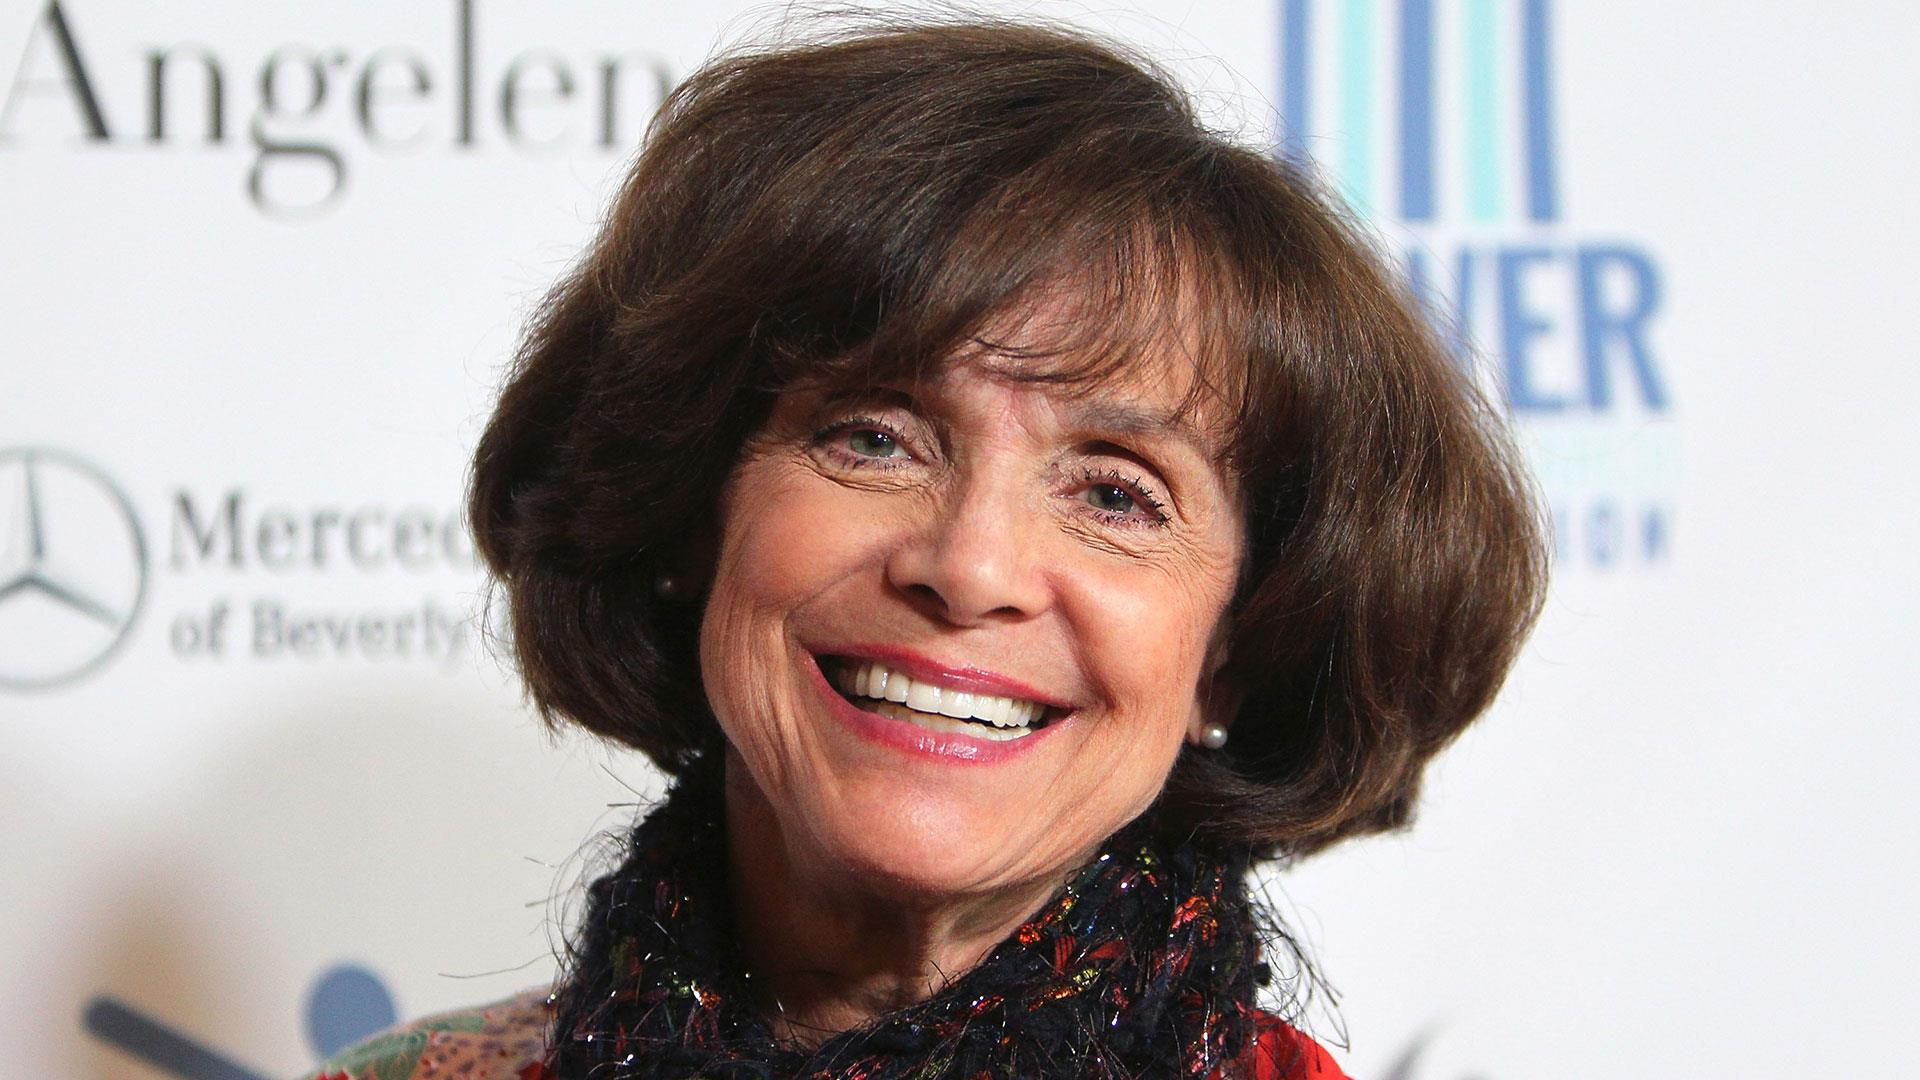 Valerie Harper, beloved 'Mary Tyler Moore' and 'Rhoda' actress, dies from cancer at 80